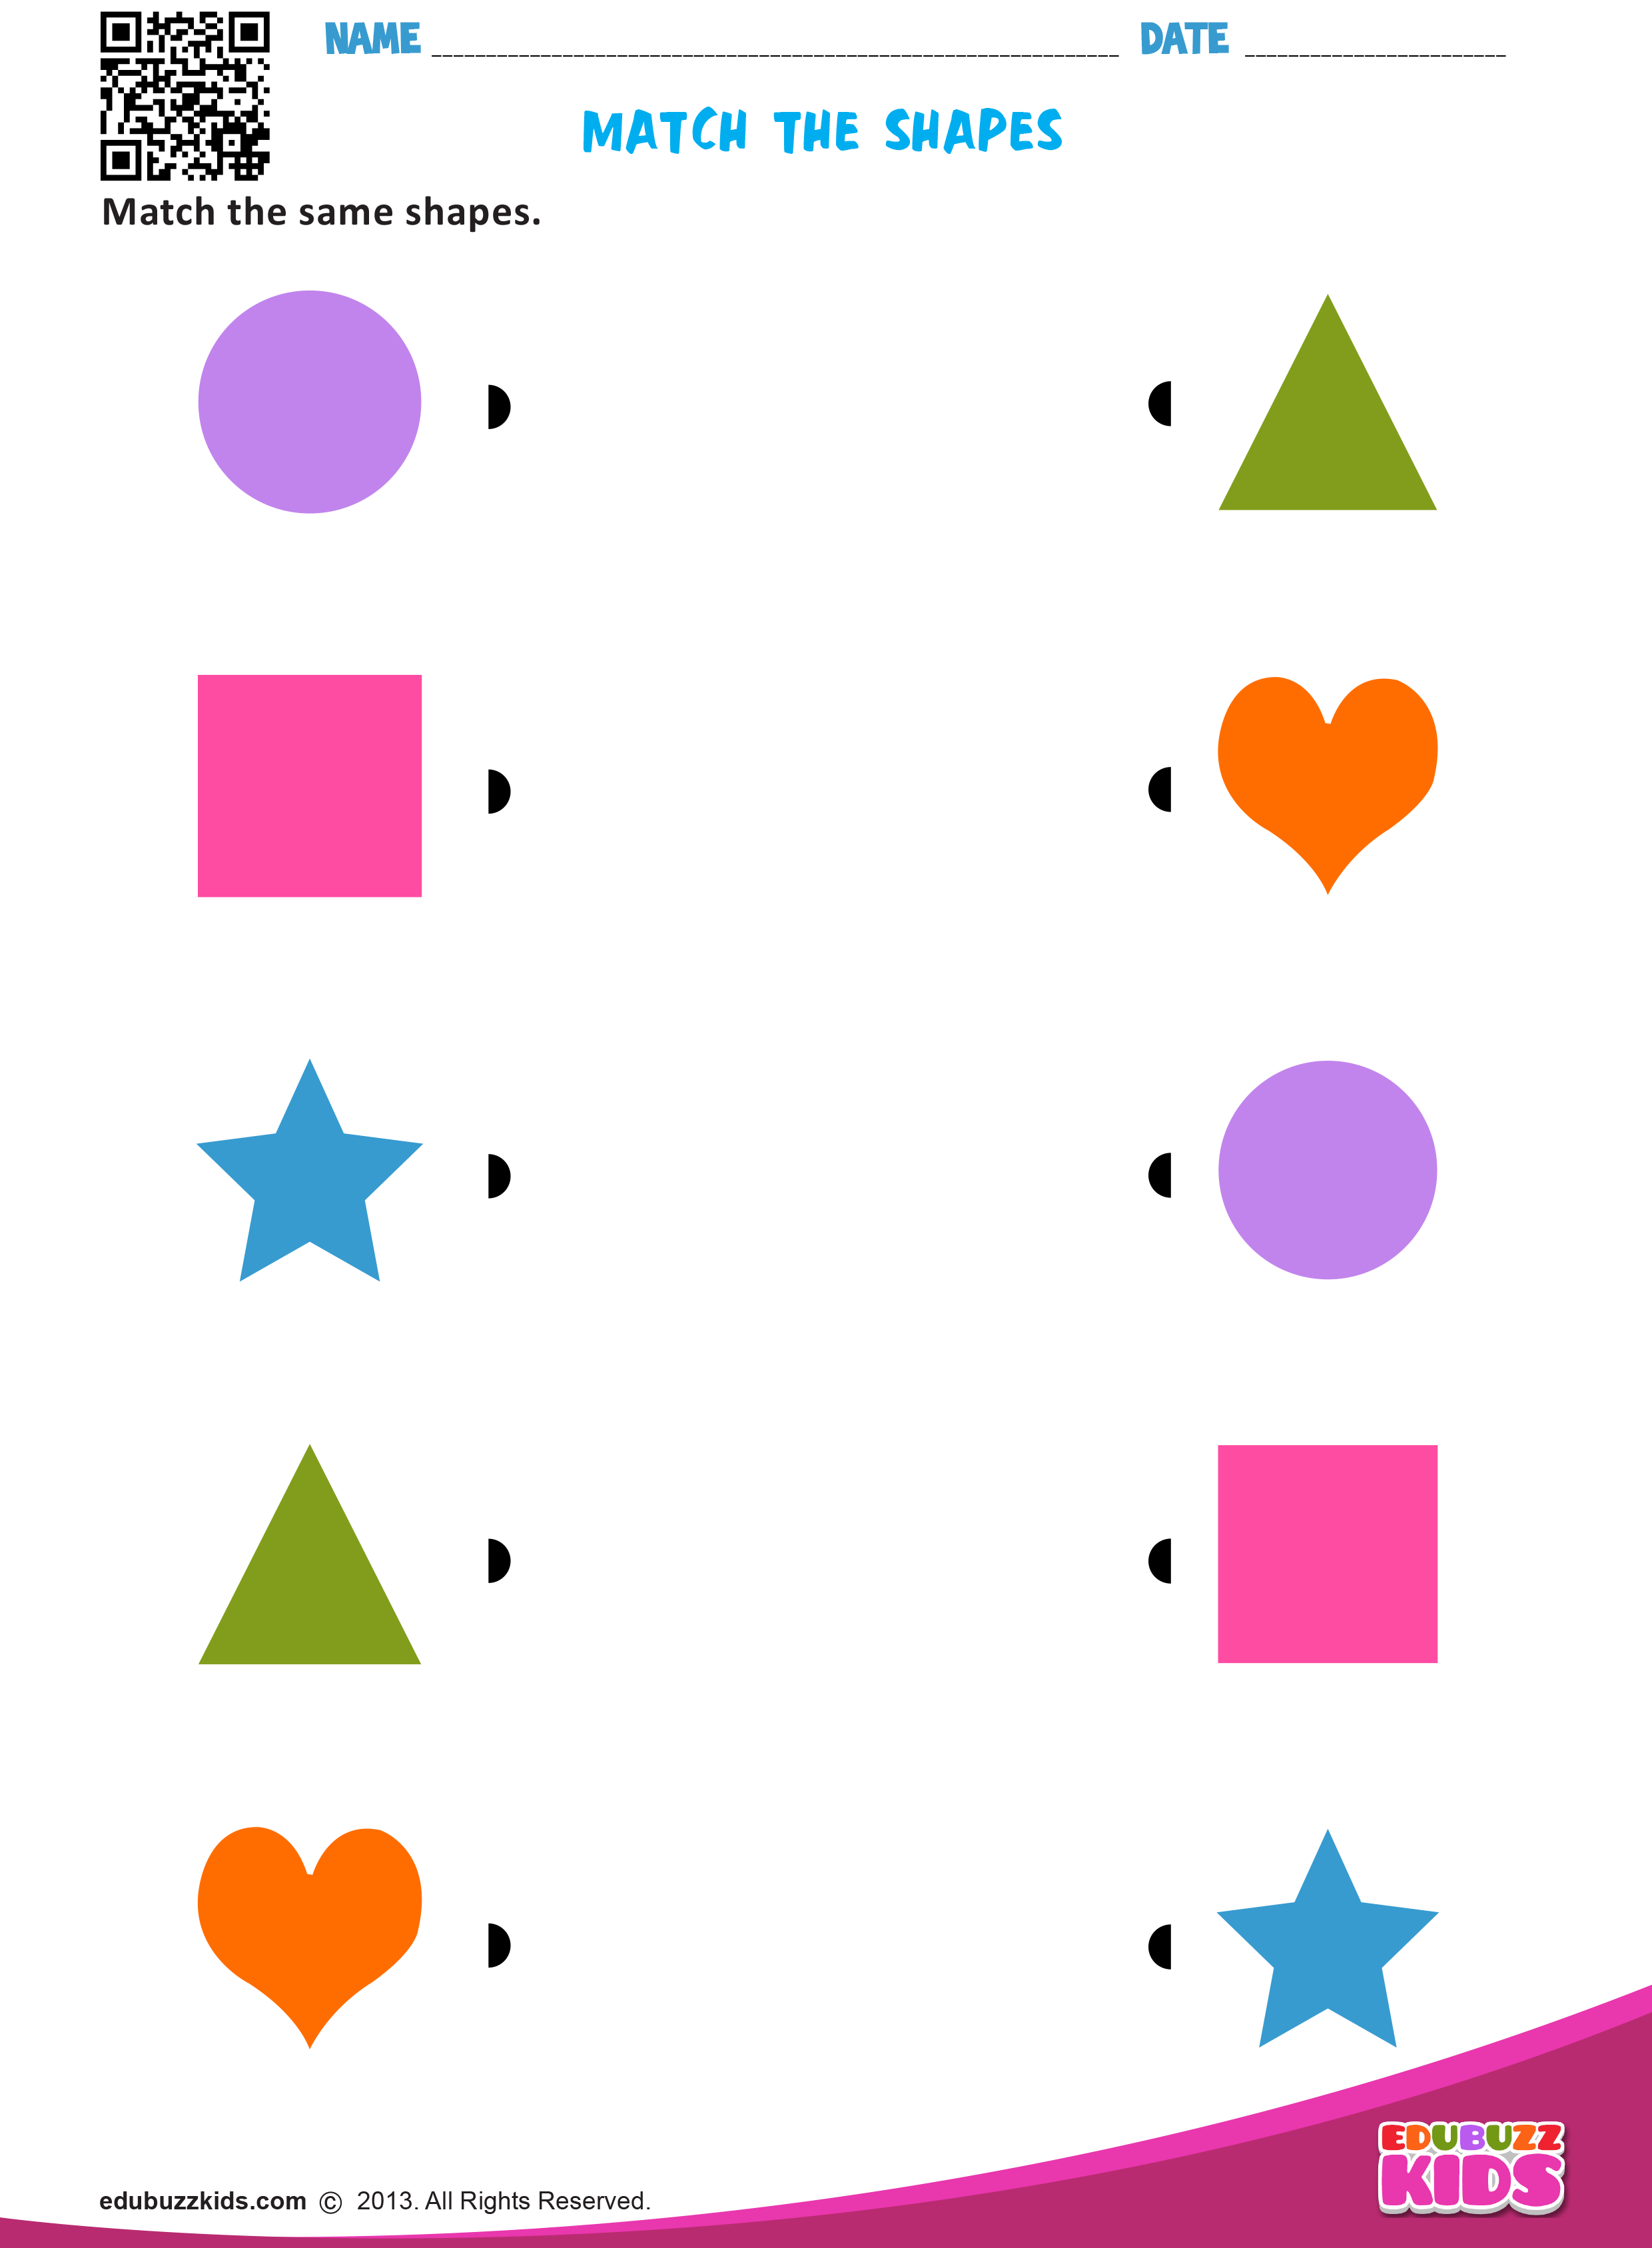 Printable shapes worksheets for kids & preschoolers. These